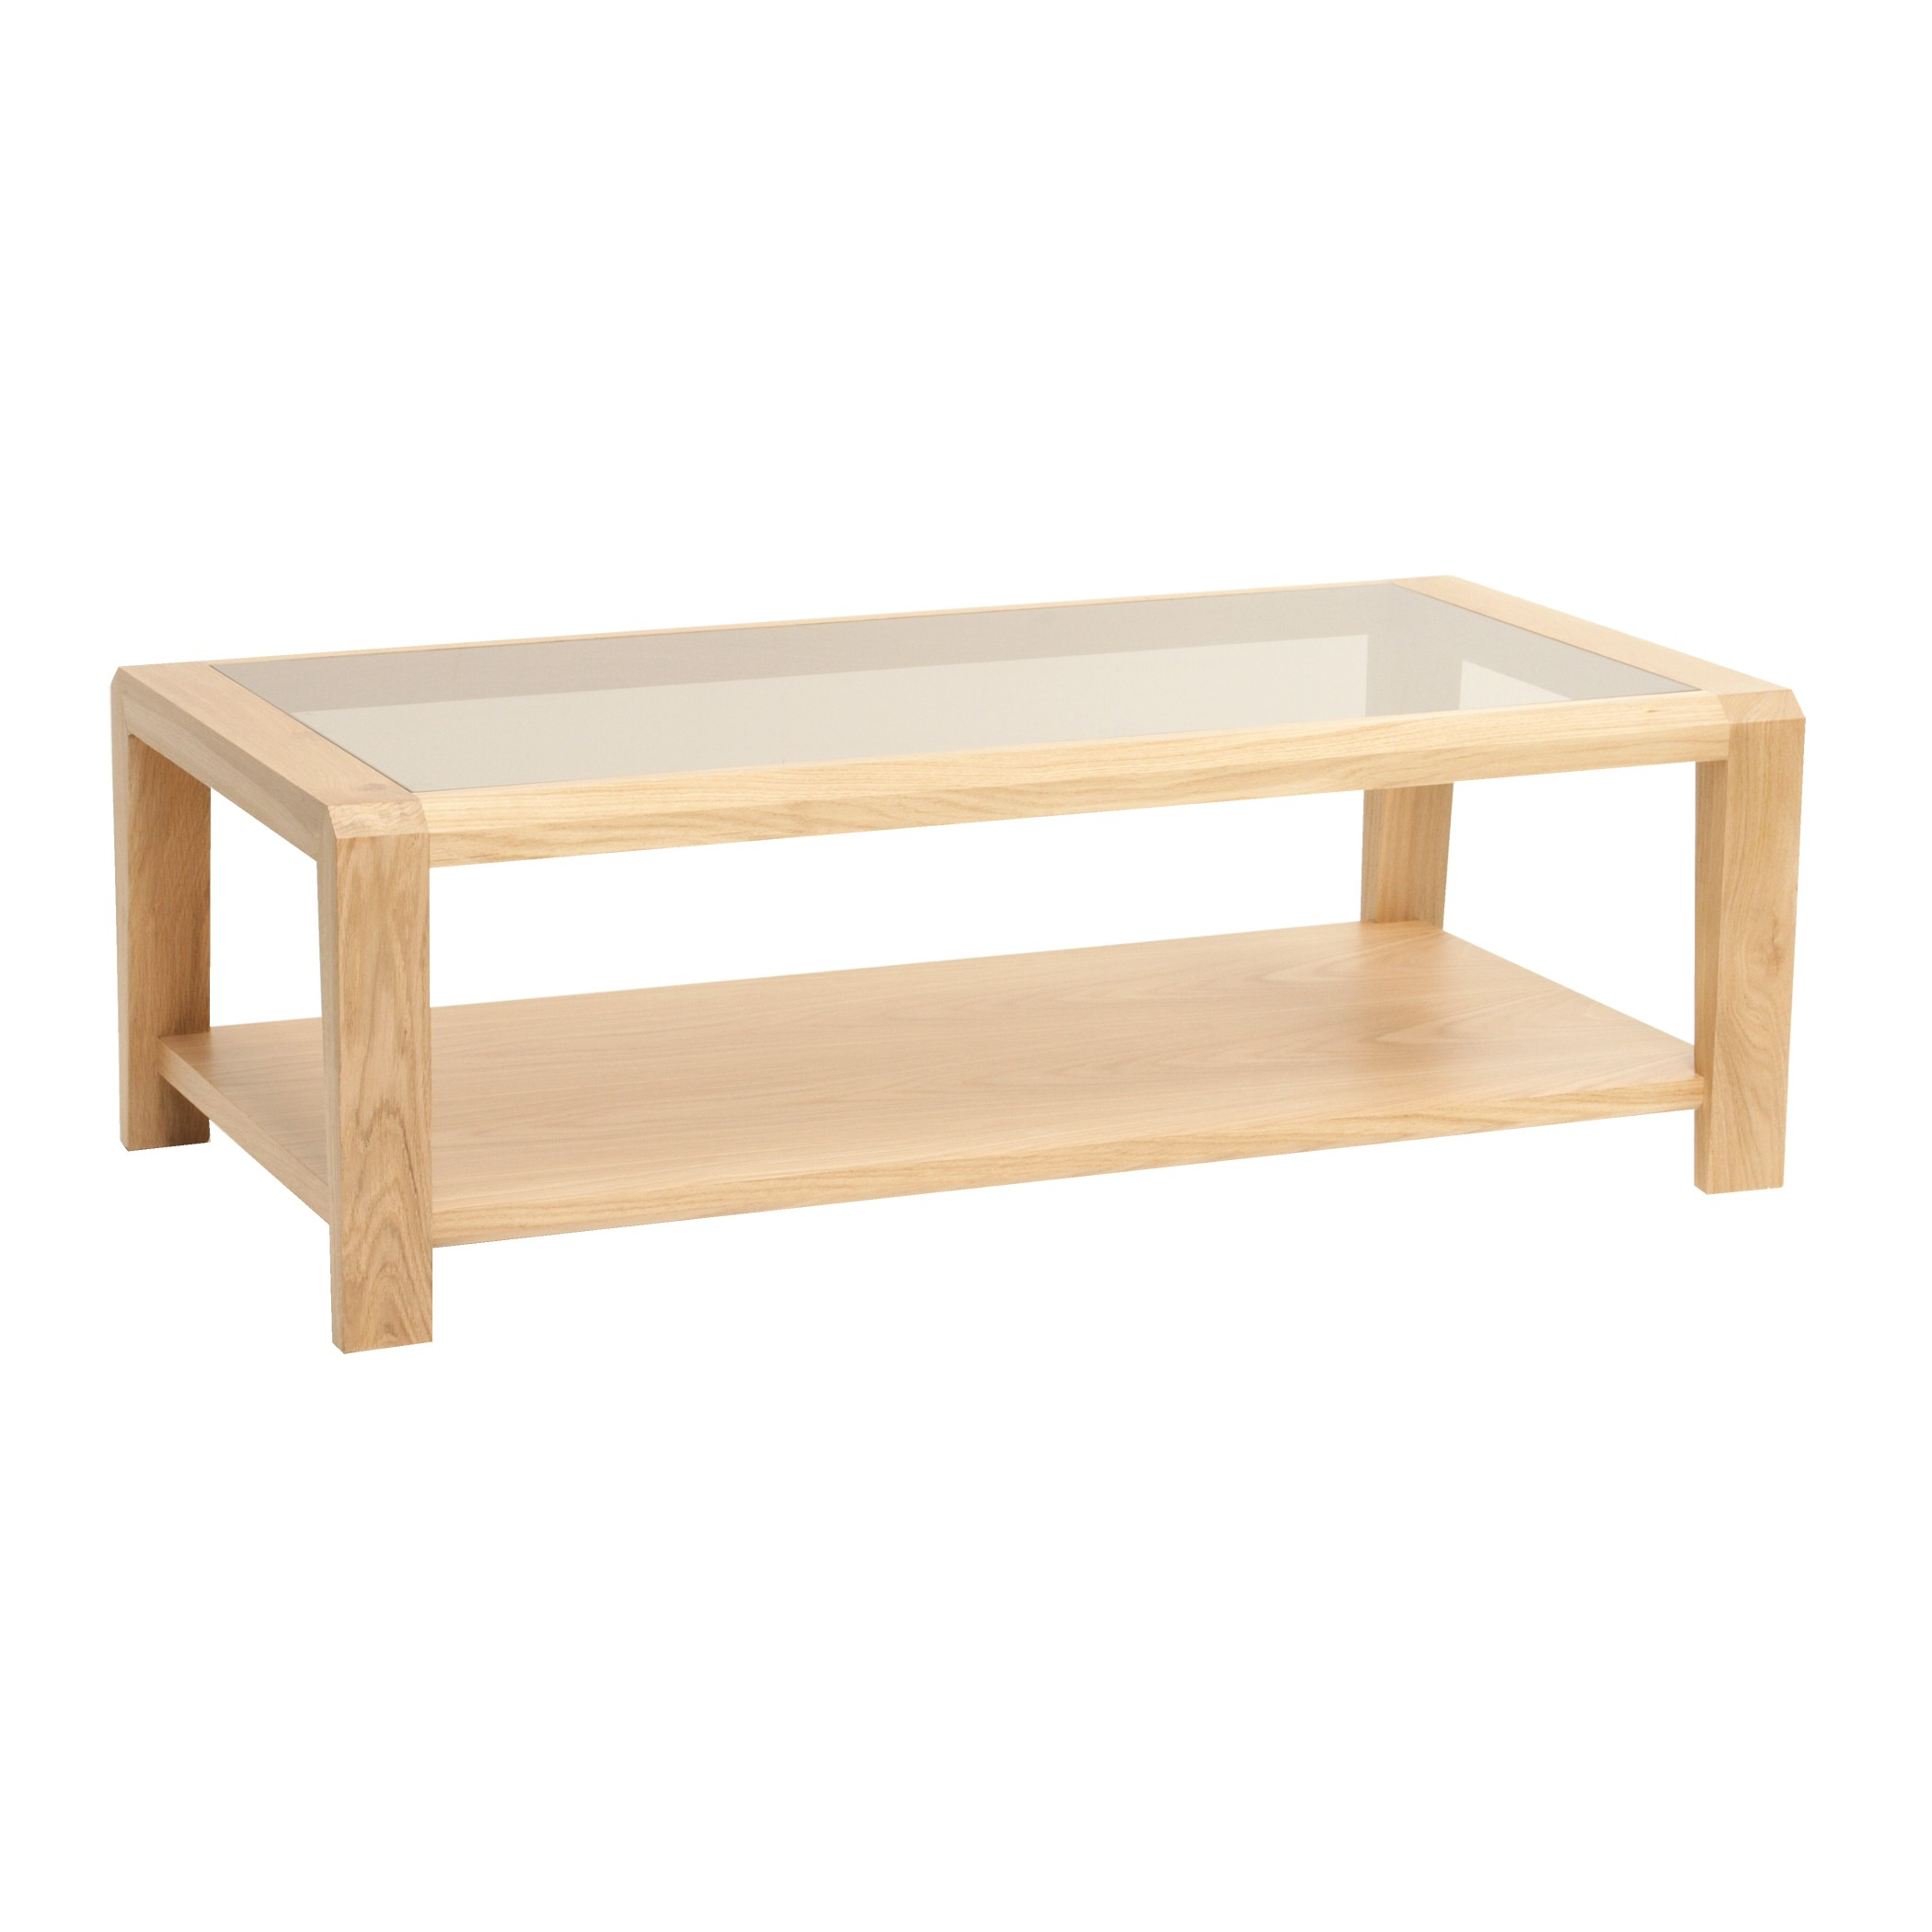 Modern Oak Coffee Table Is This Lovely Recycled Wood Iron And Pine Shape Ensures That This Piece Will Make A Statement (Image 9 of 10)